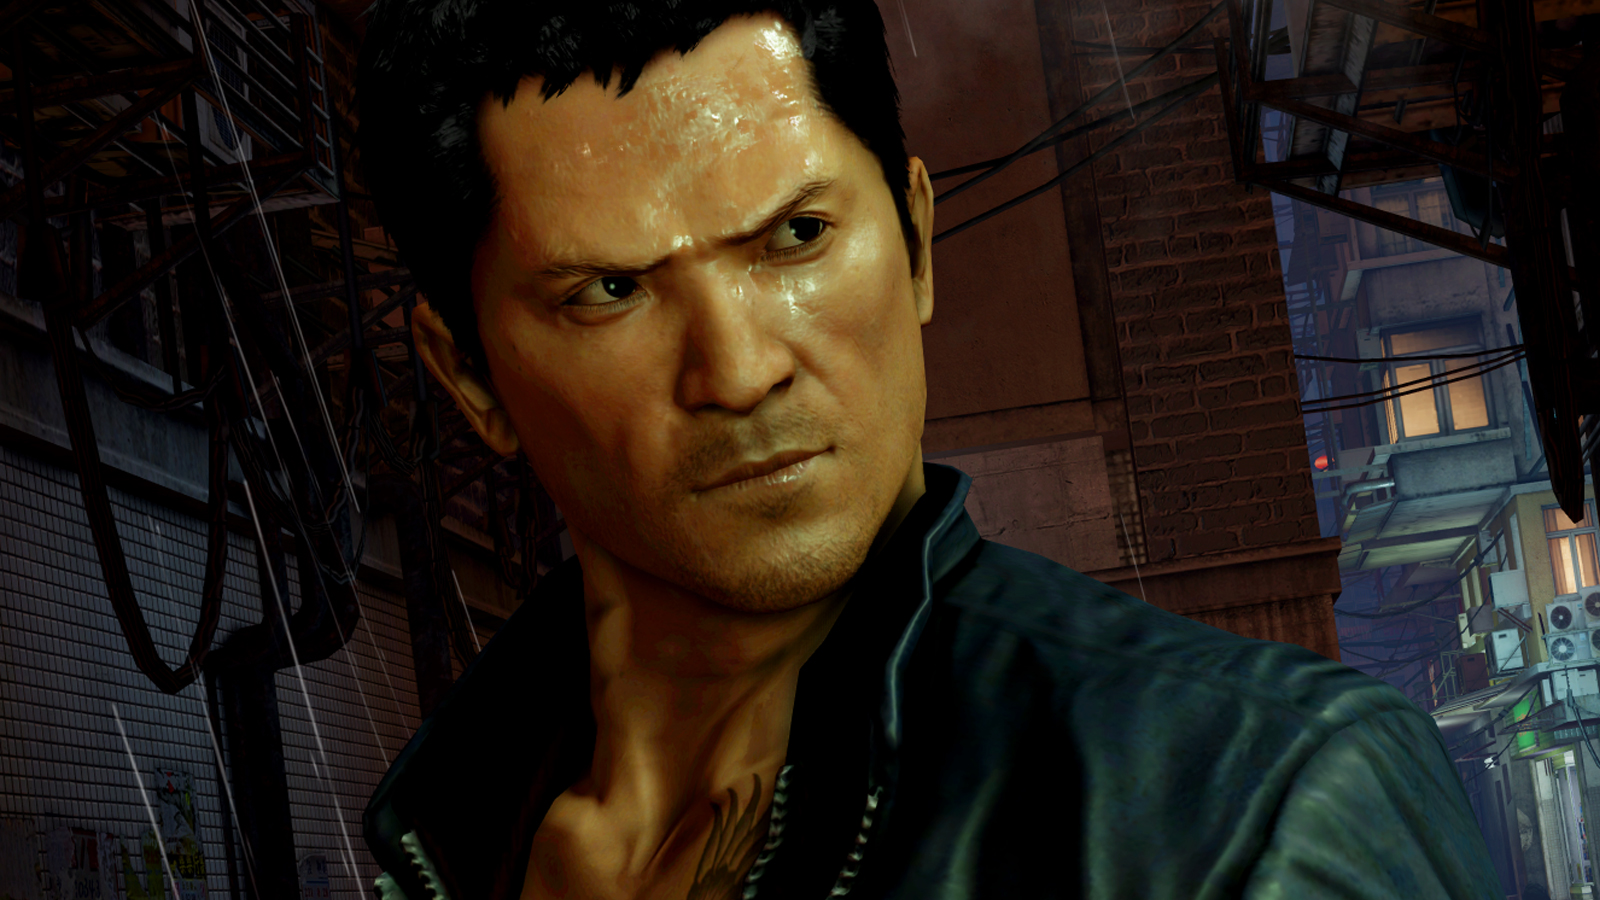 تحميل لعبة sleeping dogs مضغوطة من ميديا فاير